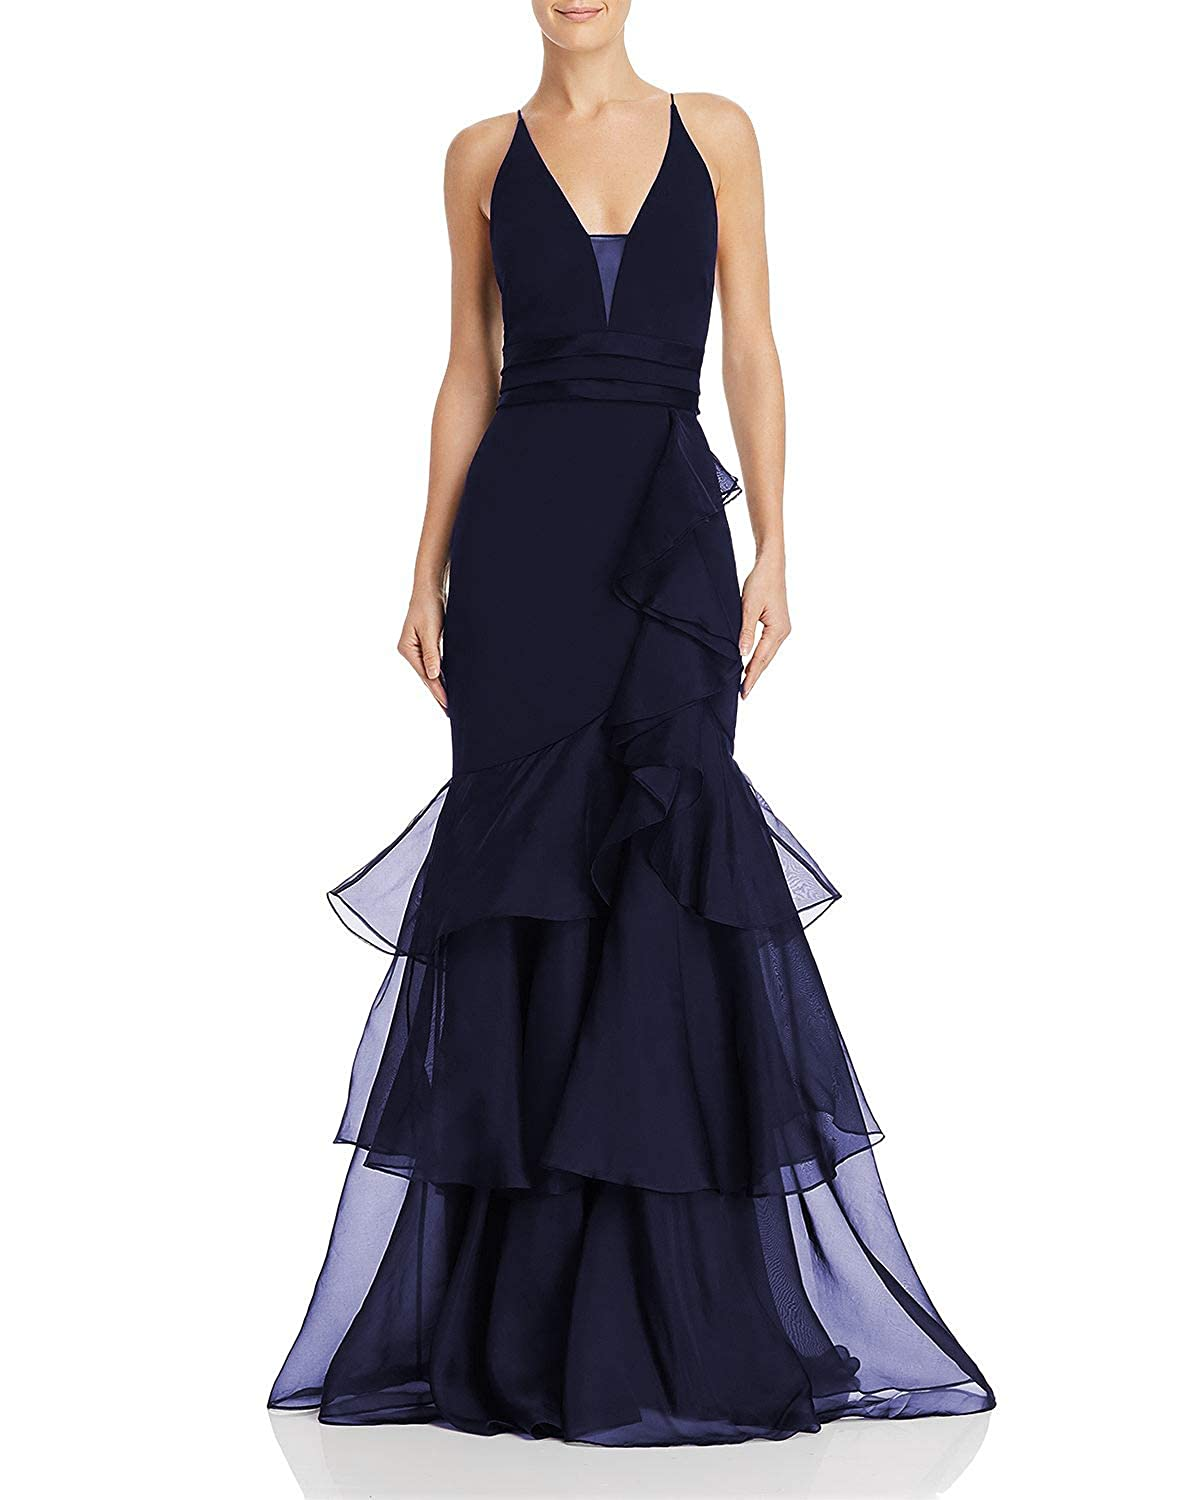 Navy Wanshaqin Women's Tiered Organza Ruffles Formal Evening Party Gown VNeck Sexy Open Back